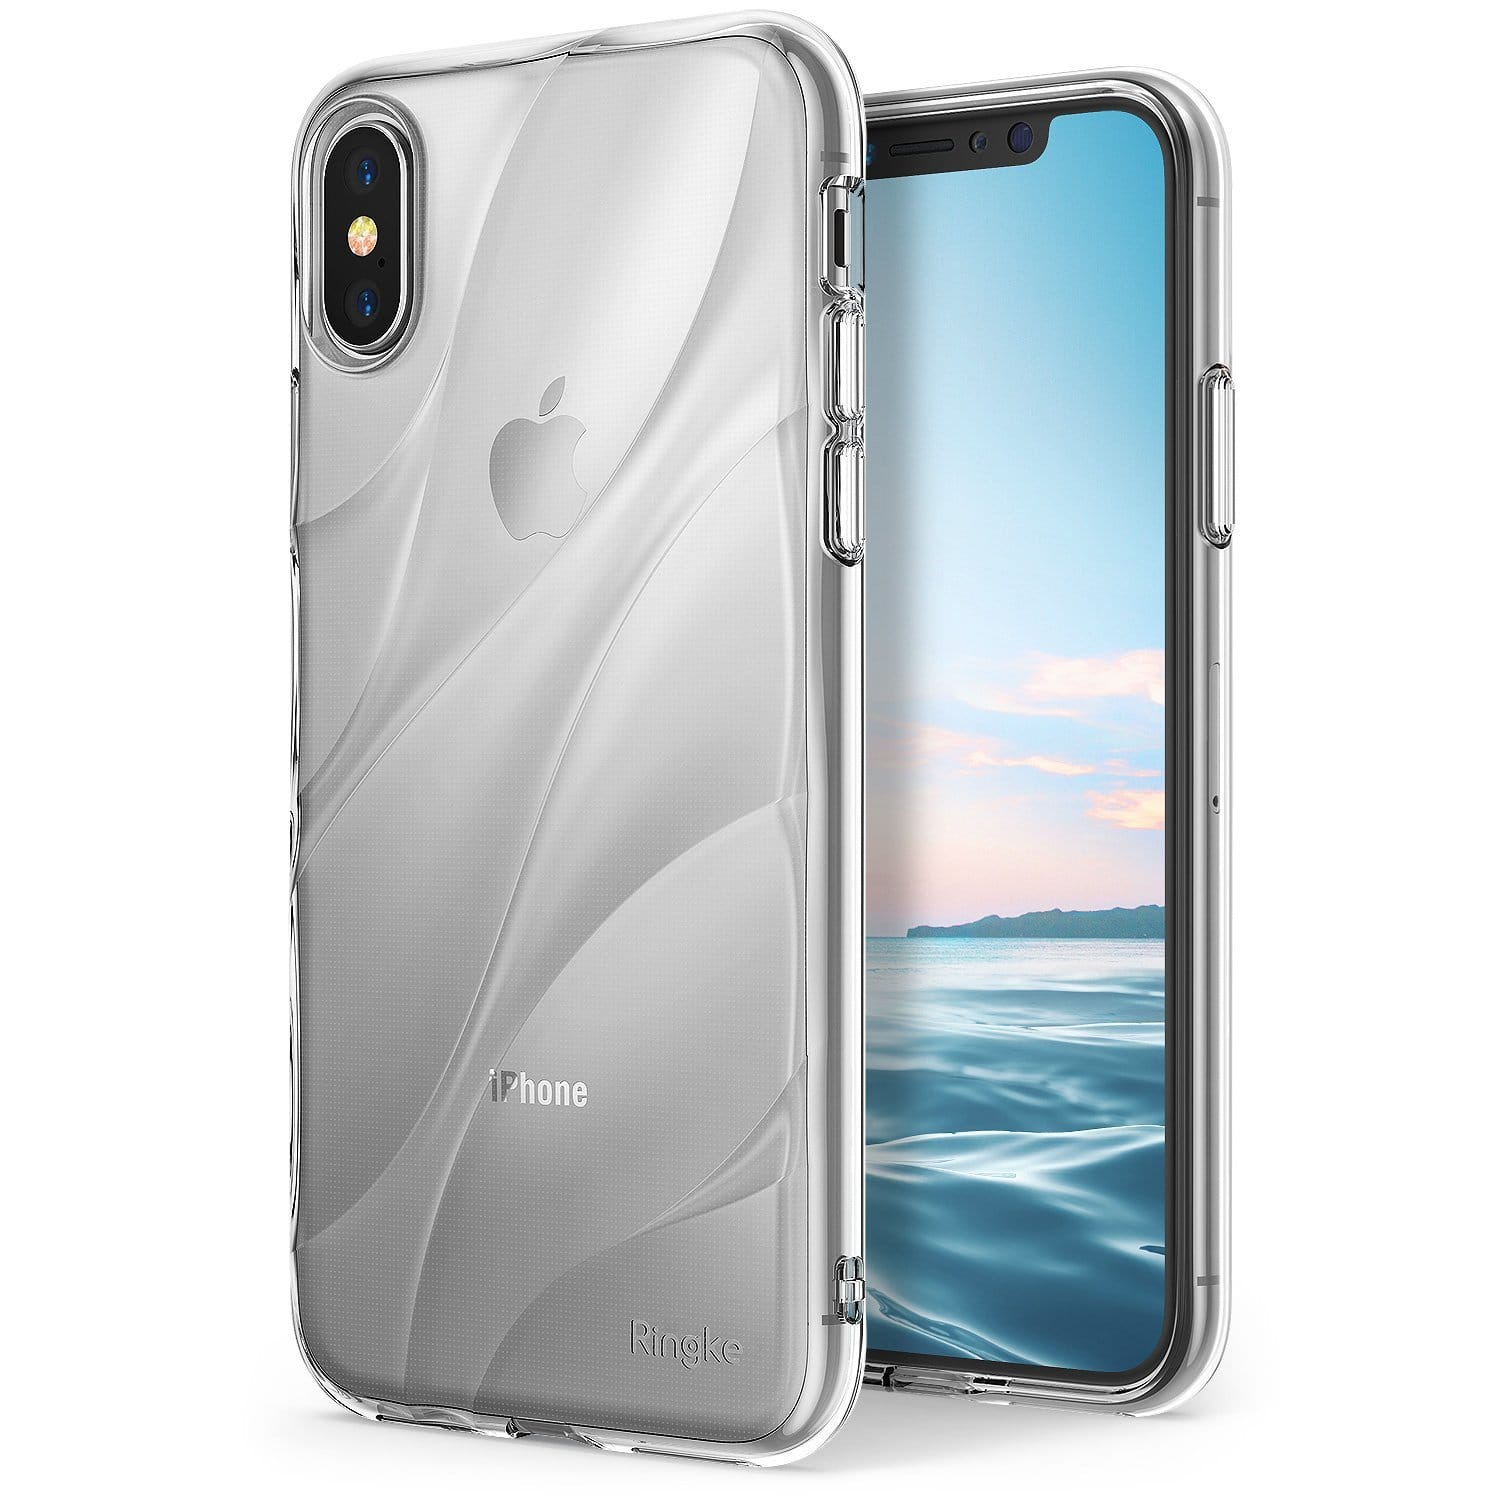 Ringke Cases for iPhone X or iPhone 8/8 Plus $3.92 + Free Shipping